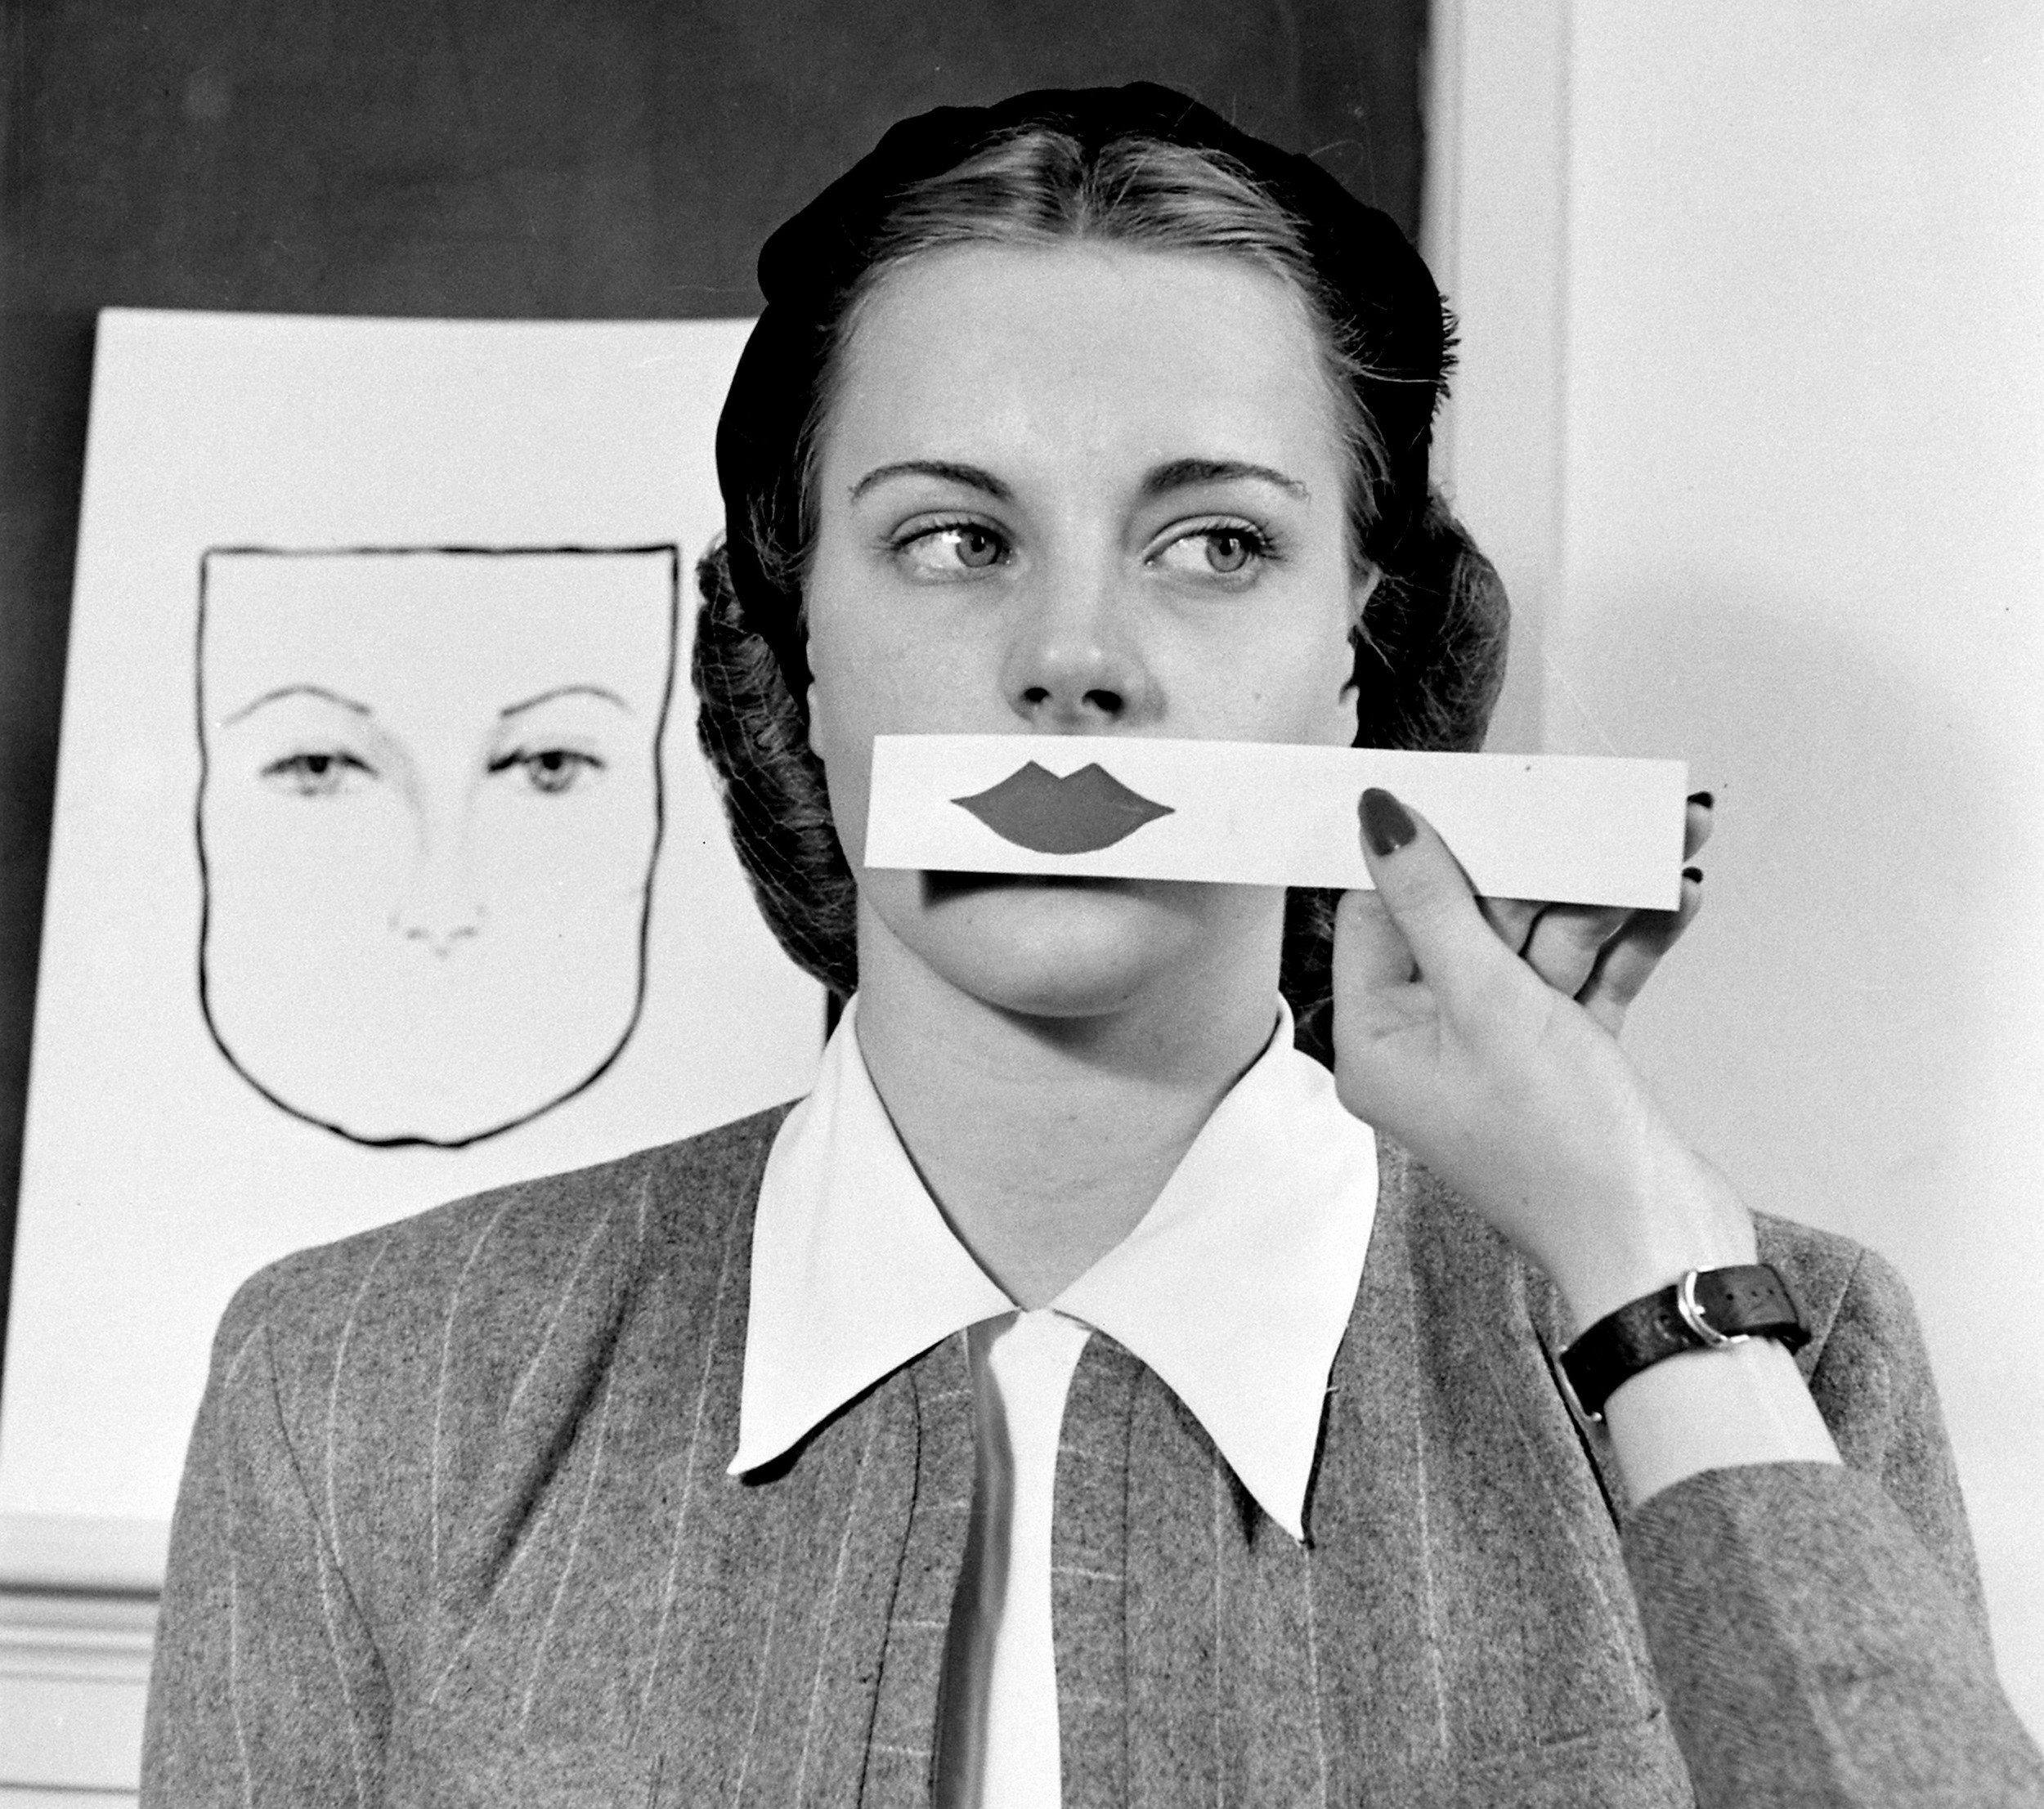 A woman samples different shades of lipstick on a strip of paper at Stephens College in Columbia, Missouri, 1945.